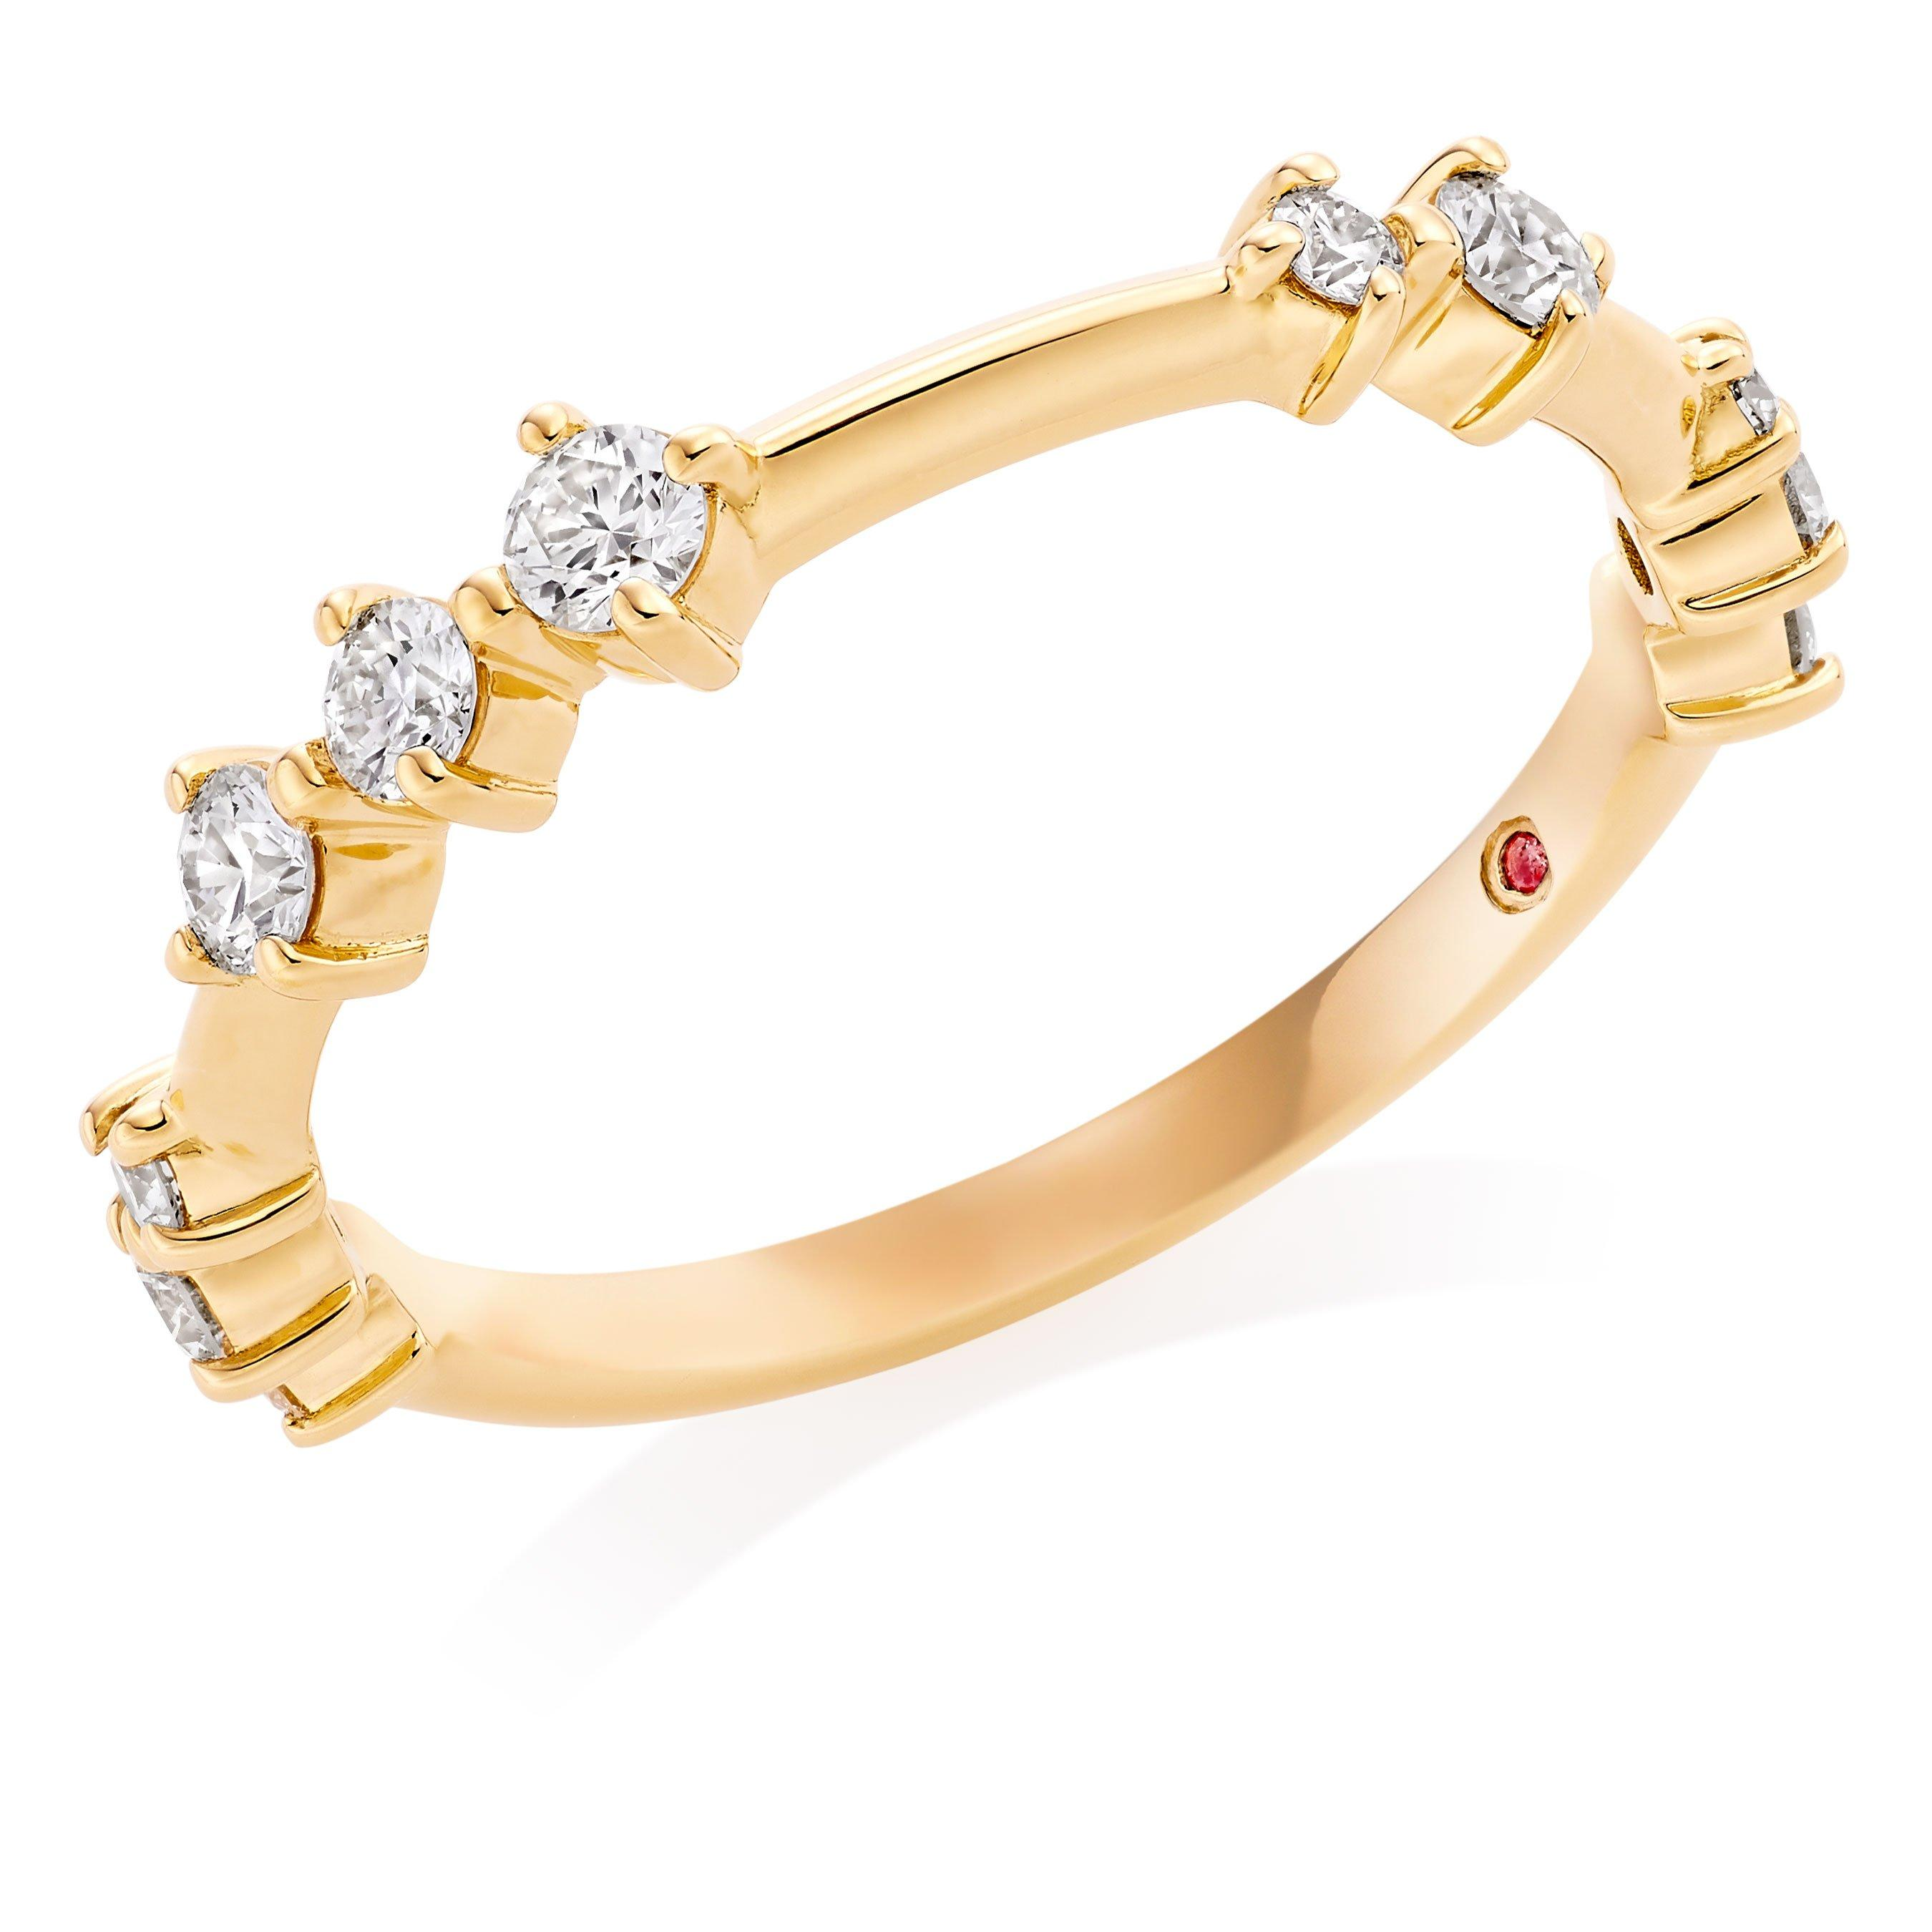 Hearts On Fire Hayley Paige Love Code 18ct Gold Diamond Ring